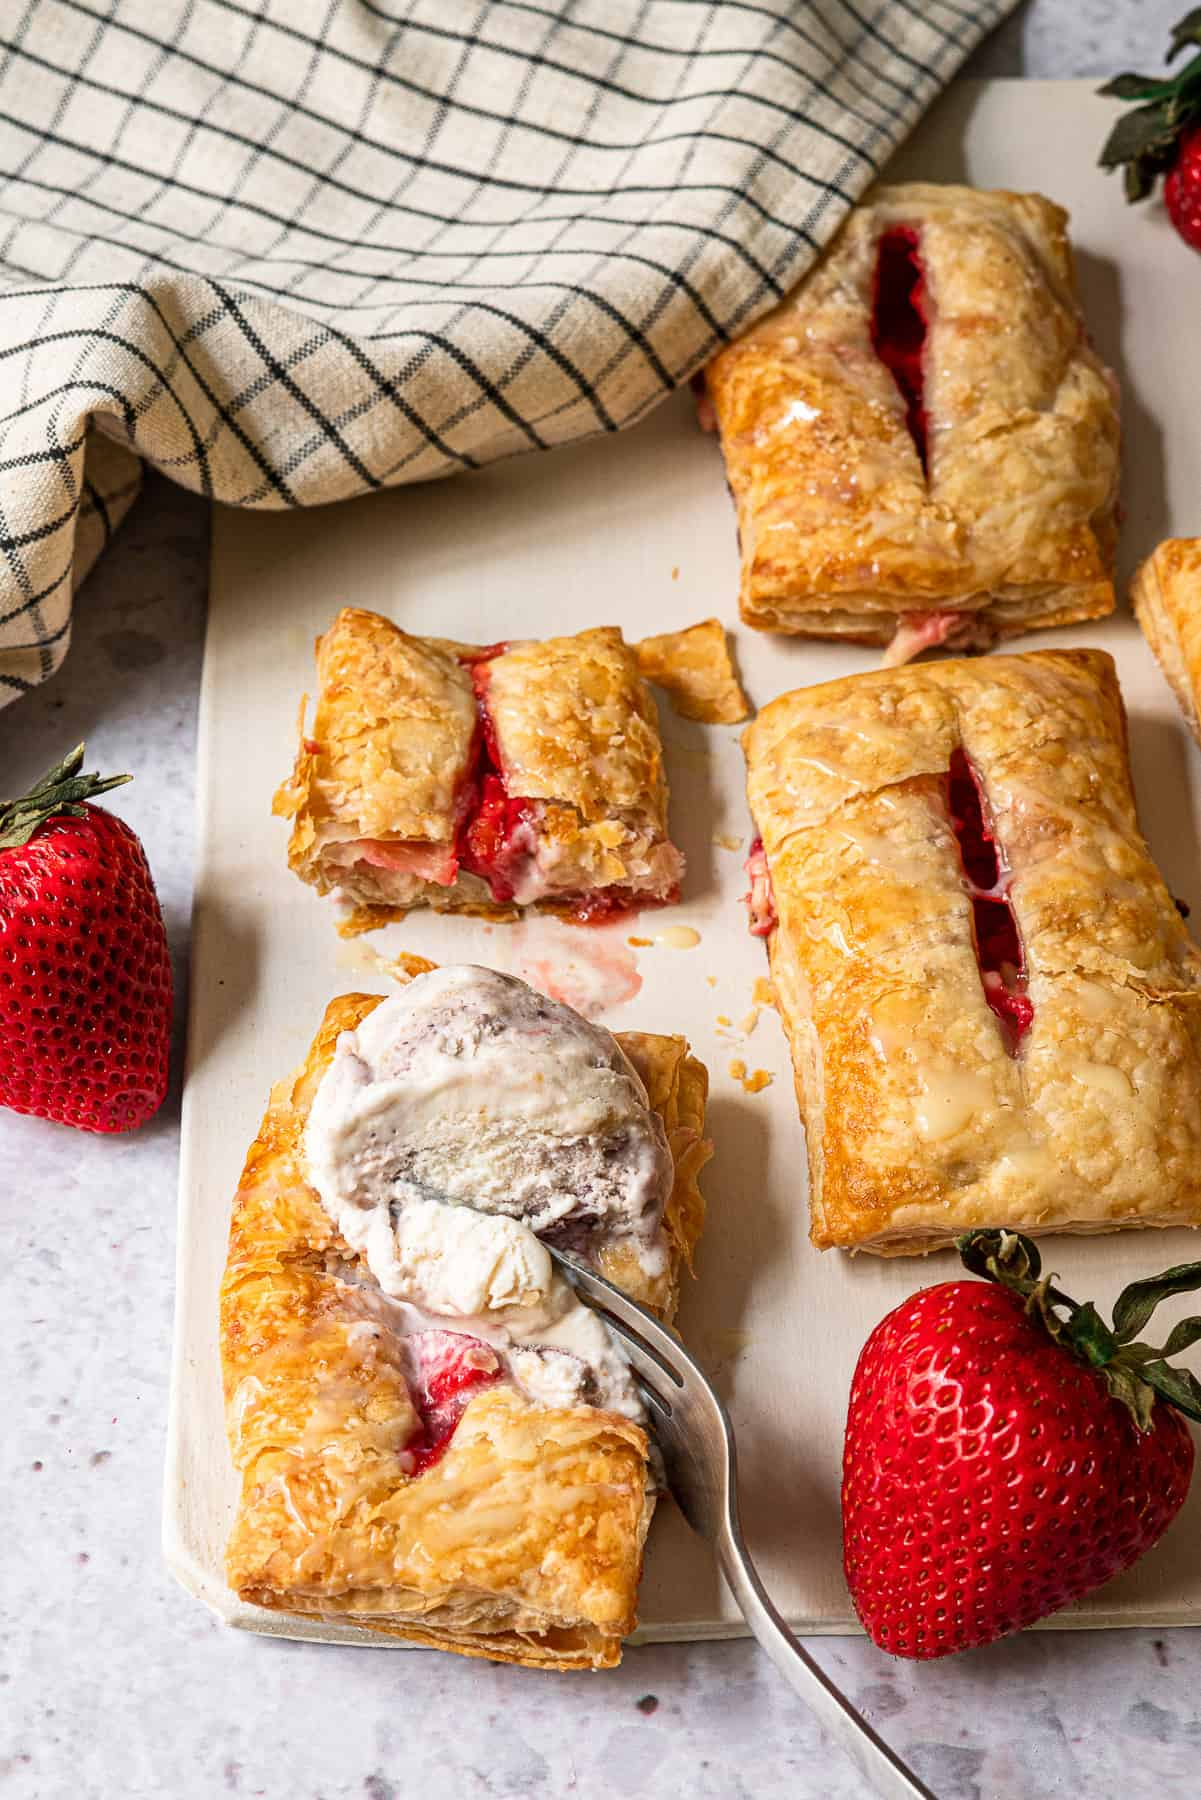 strawberry turnovers with a fork digging into a scoop of ice cream